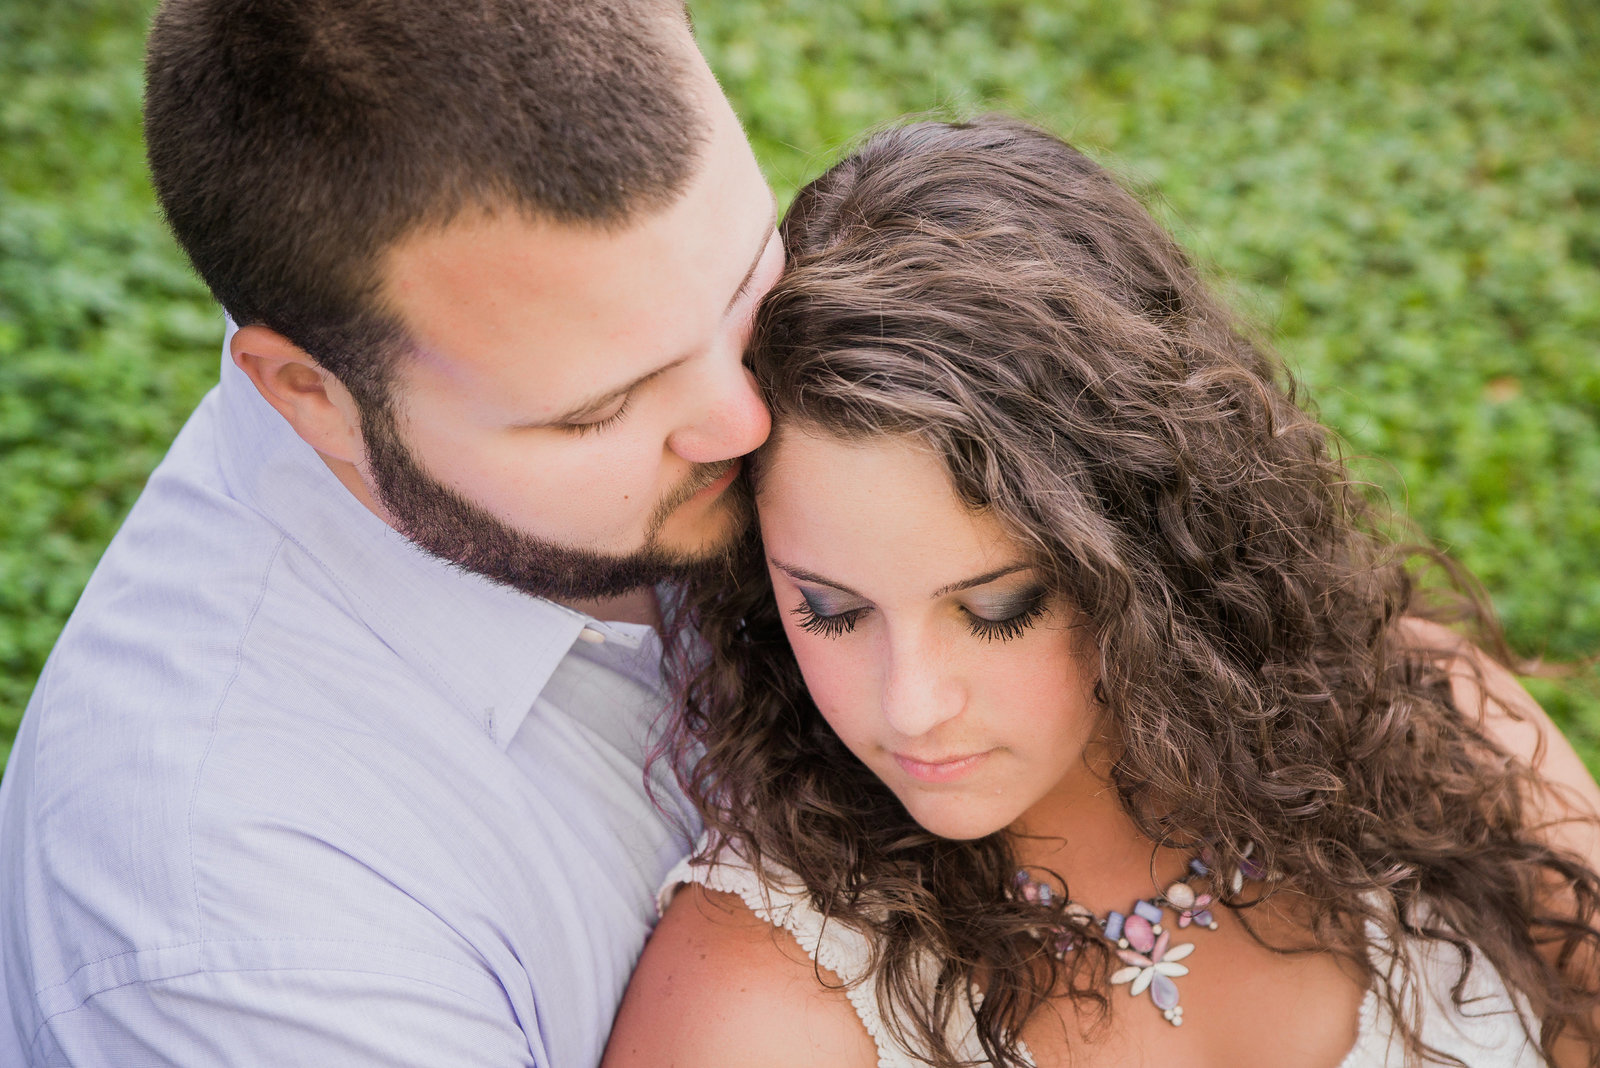 NJ_Rustic_Engagement_Photography016